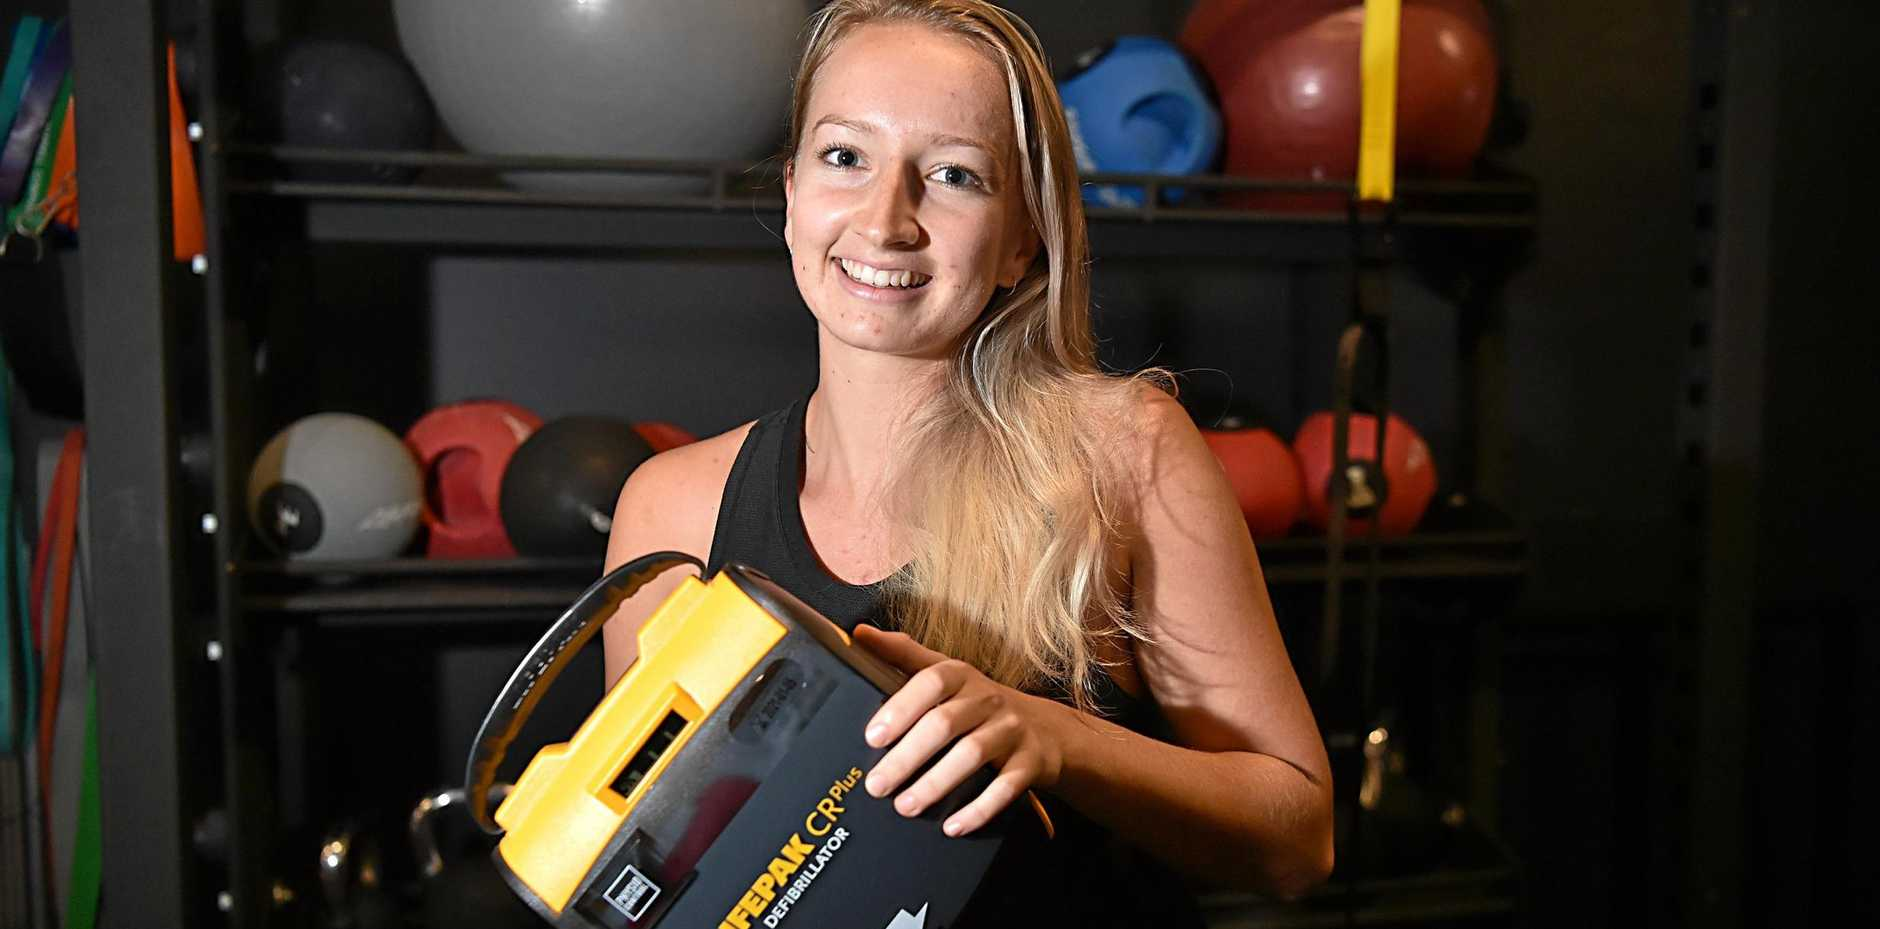 LIFE-SAVING DEVICE: Emily Counter with a defibrillator at Anytime Fitness, Kawana.